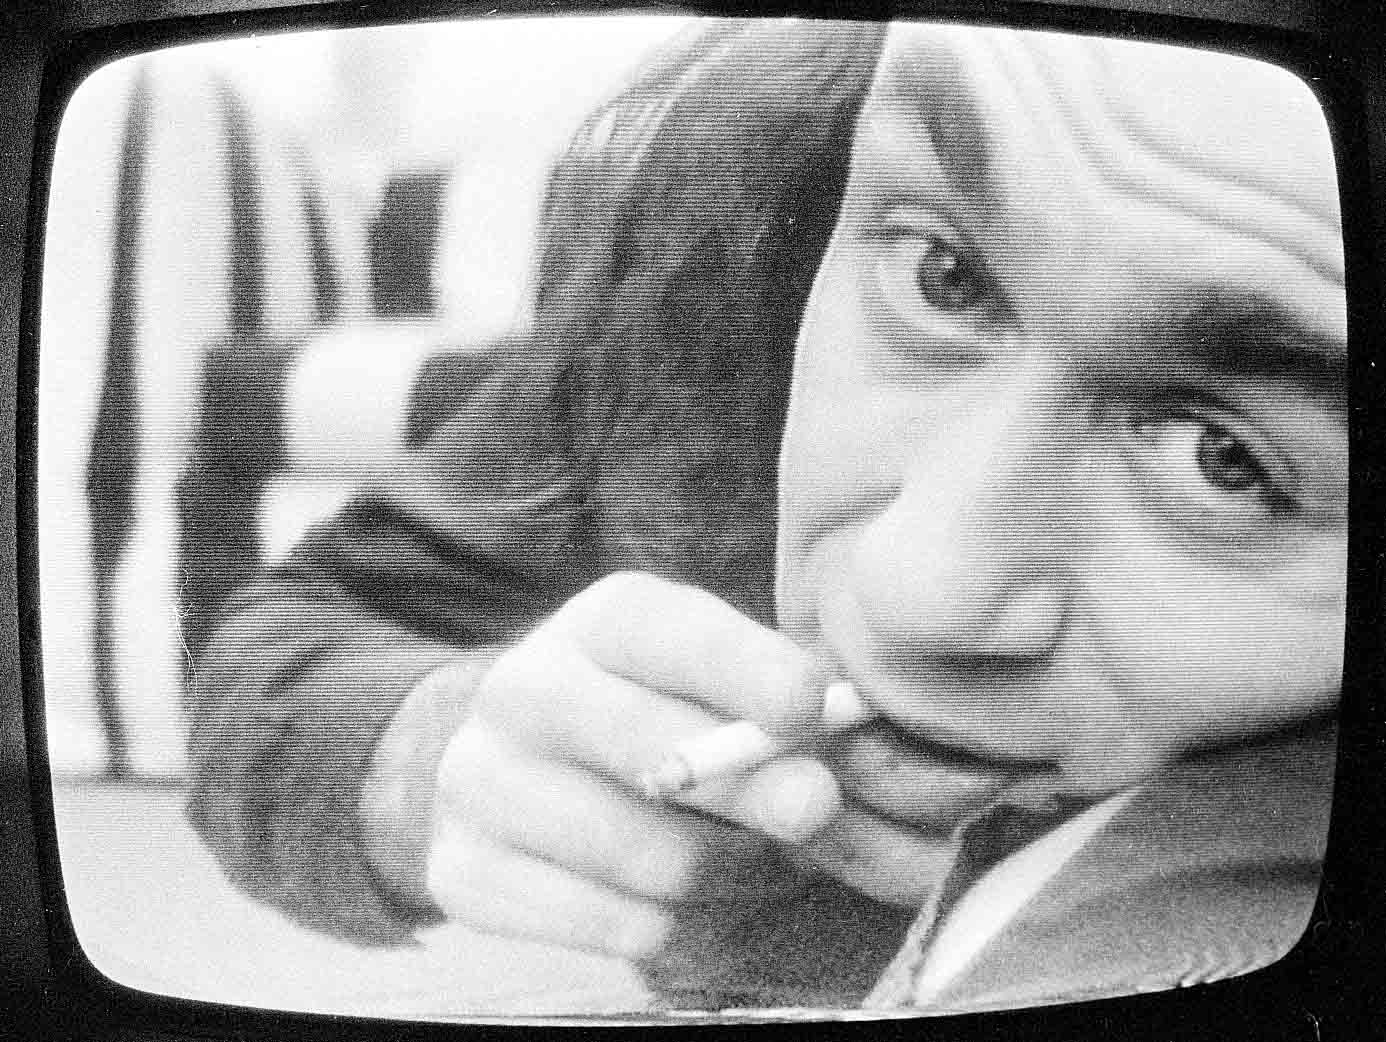 Vito Acconci, Theme song, 1973